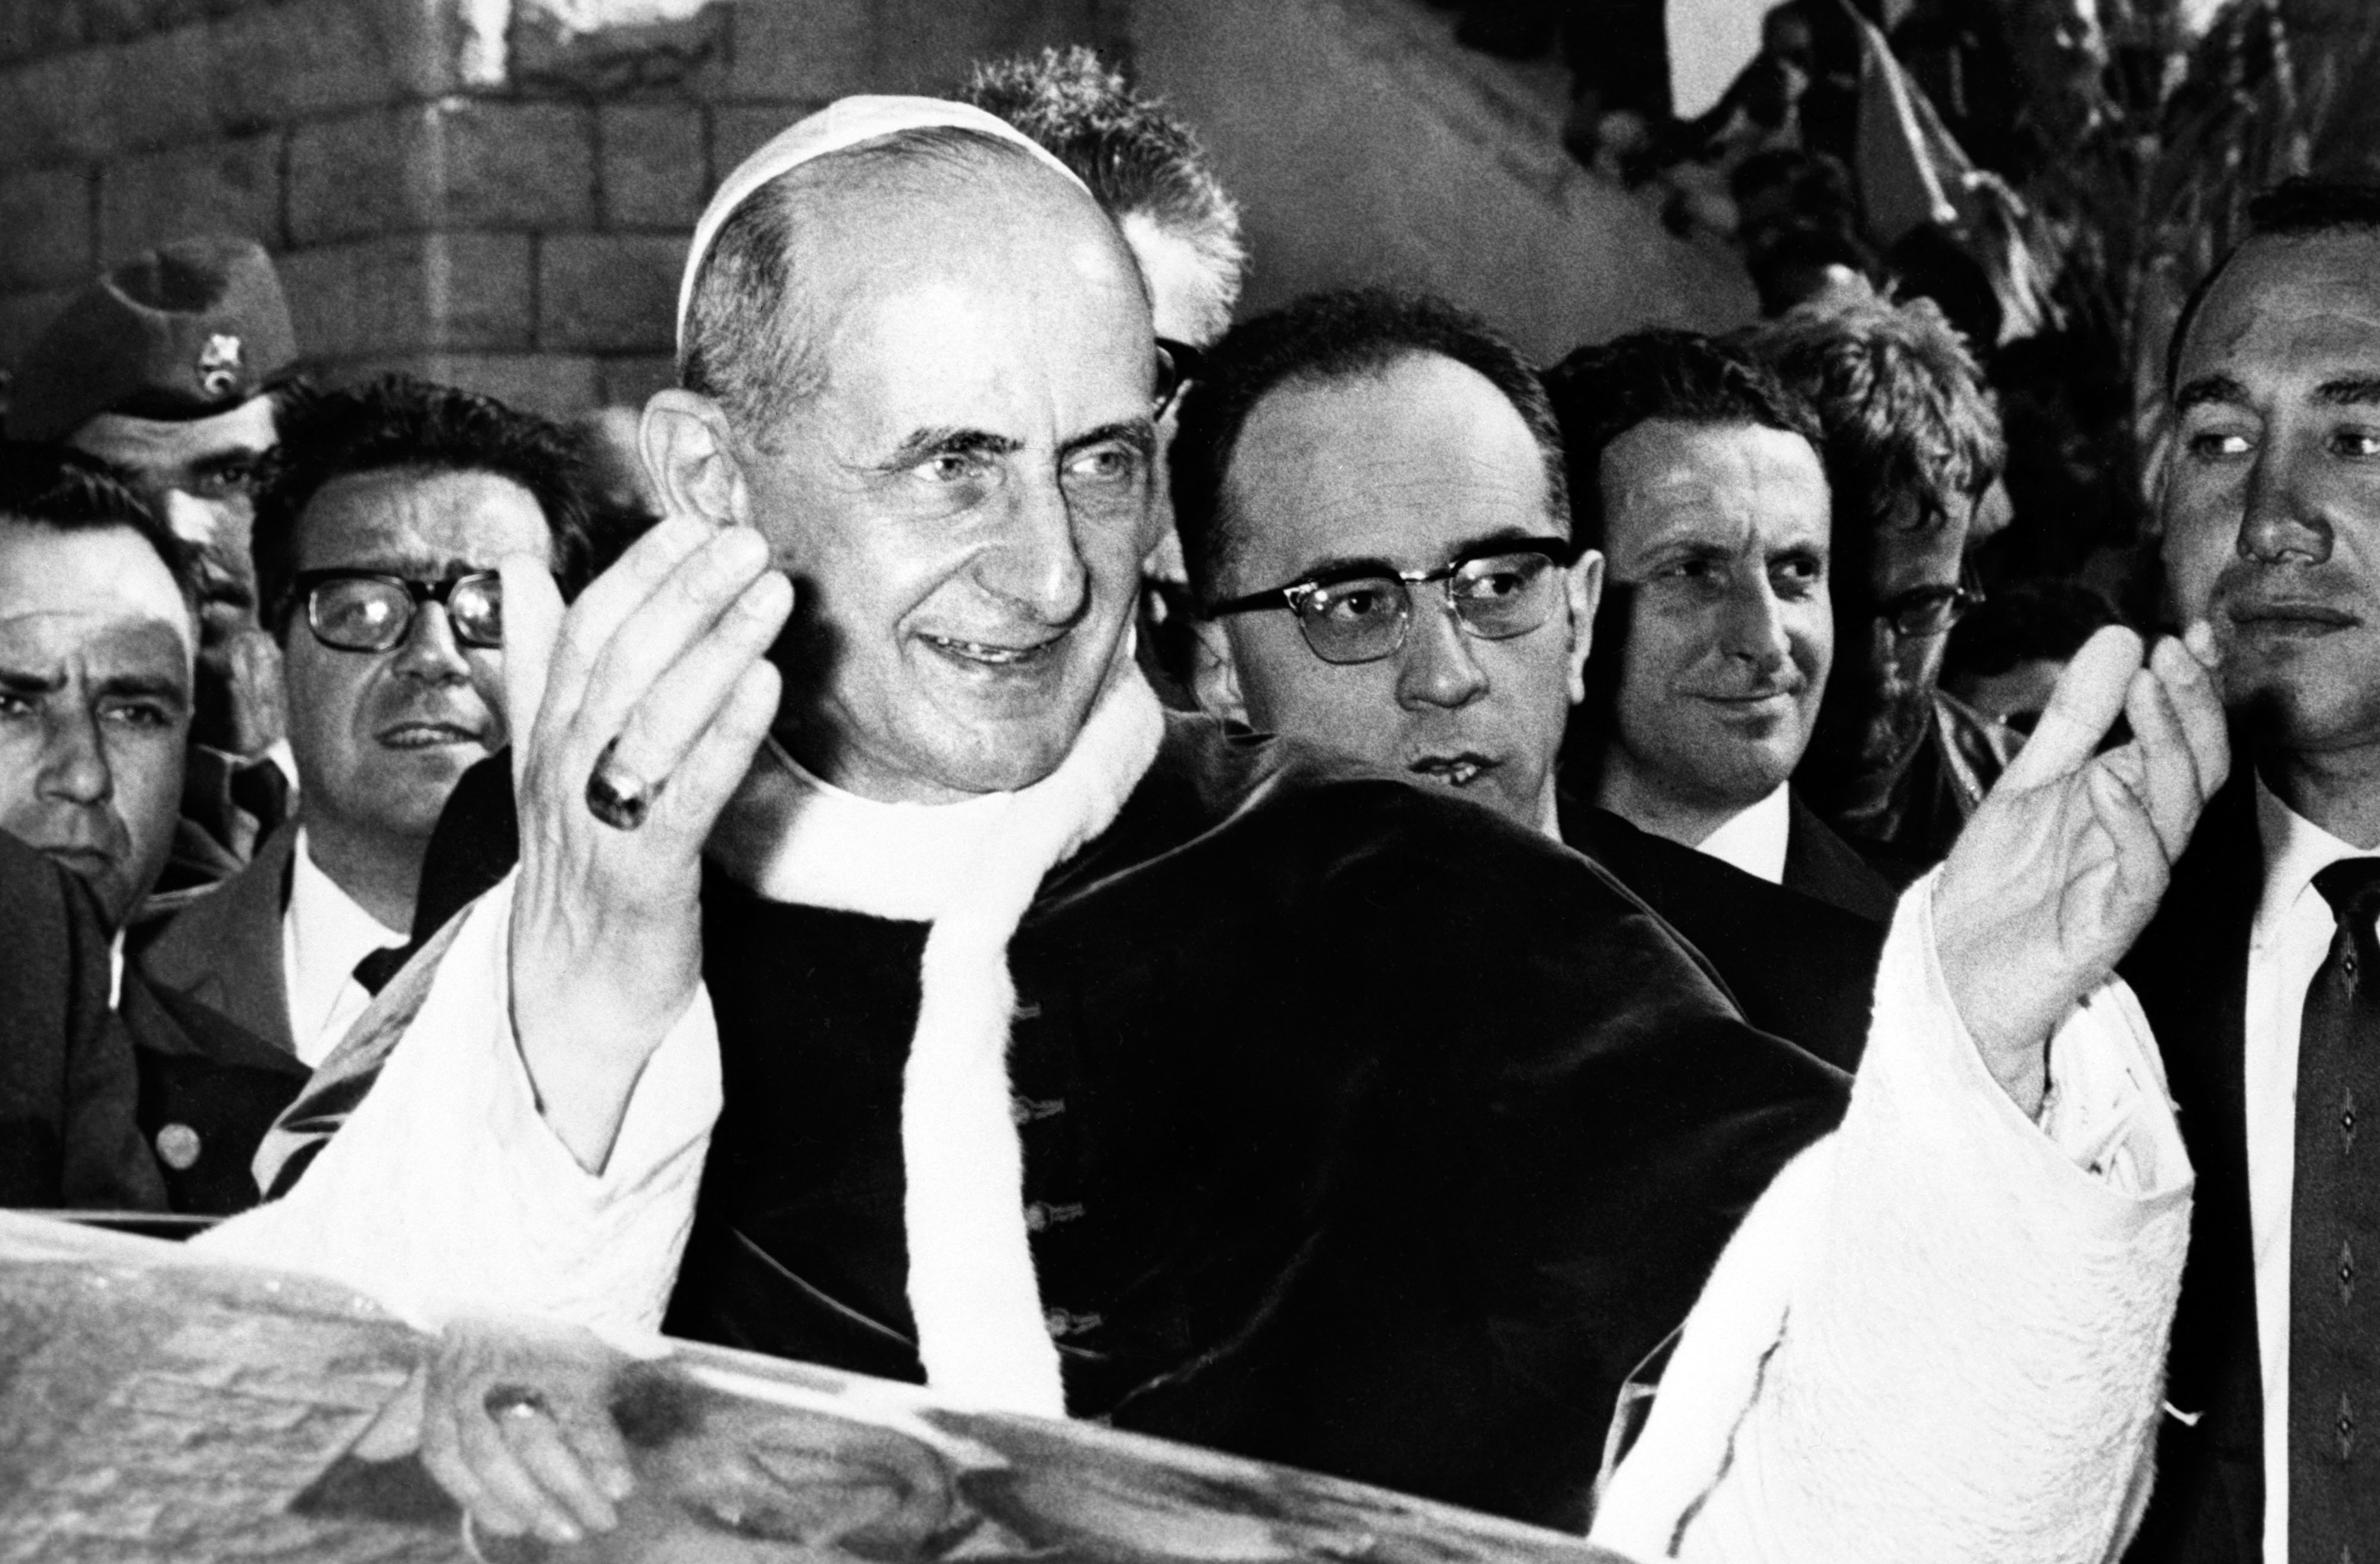 Pope Paul VI leaves the Basilica of the Annunciation in Nazareth after celebrating a mass, on January 05, 1964, during his visit to the Holy Land. It is the first visit ever of a pope to the Holy Land (Jordan, Israel, Jerusalem and the Palestinian territories).